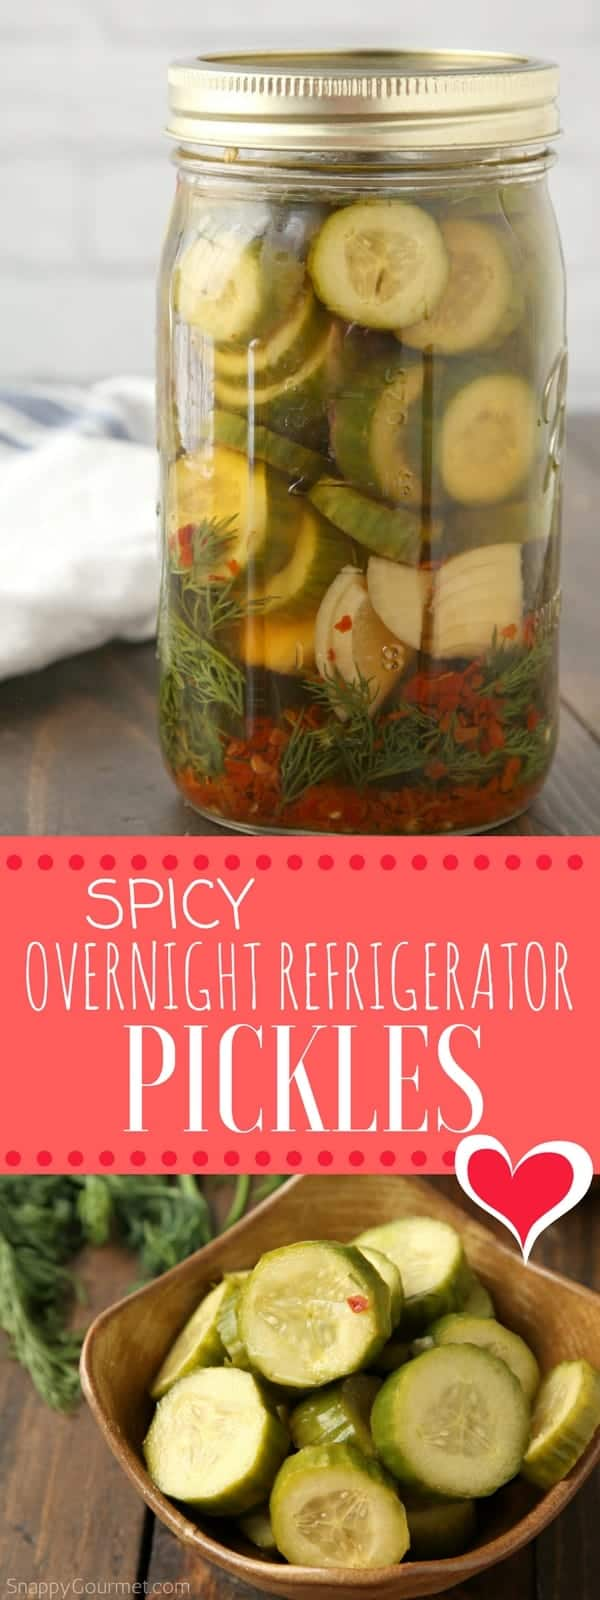 Spicy Pickle Recipe - how to make homemade overnight refrigerator pickles. #Pickles #Spicy #Recipe #SnappyGourmet #Yummy #vegetables #Cucumbers #Homemade #Dill #Snack #Easy #DIY #Condiment #foodgasm